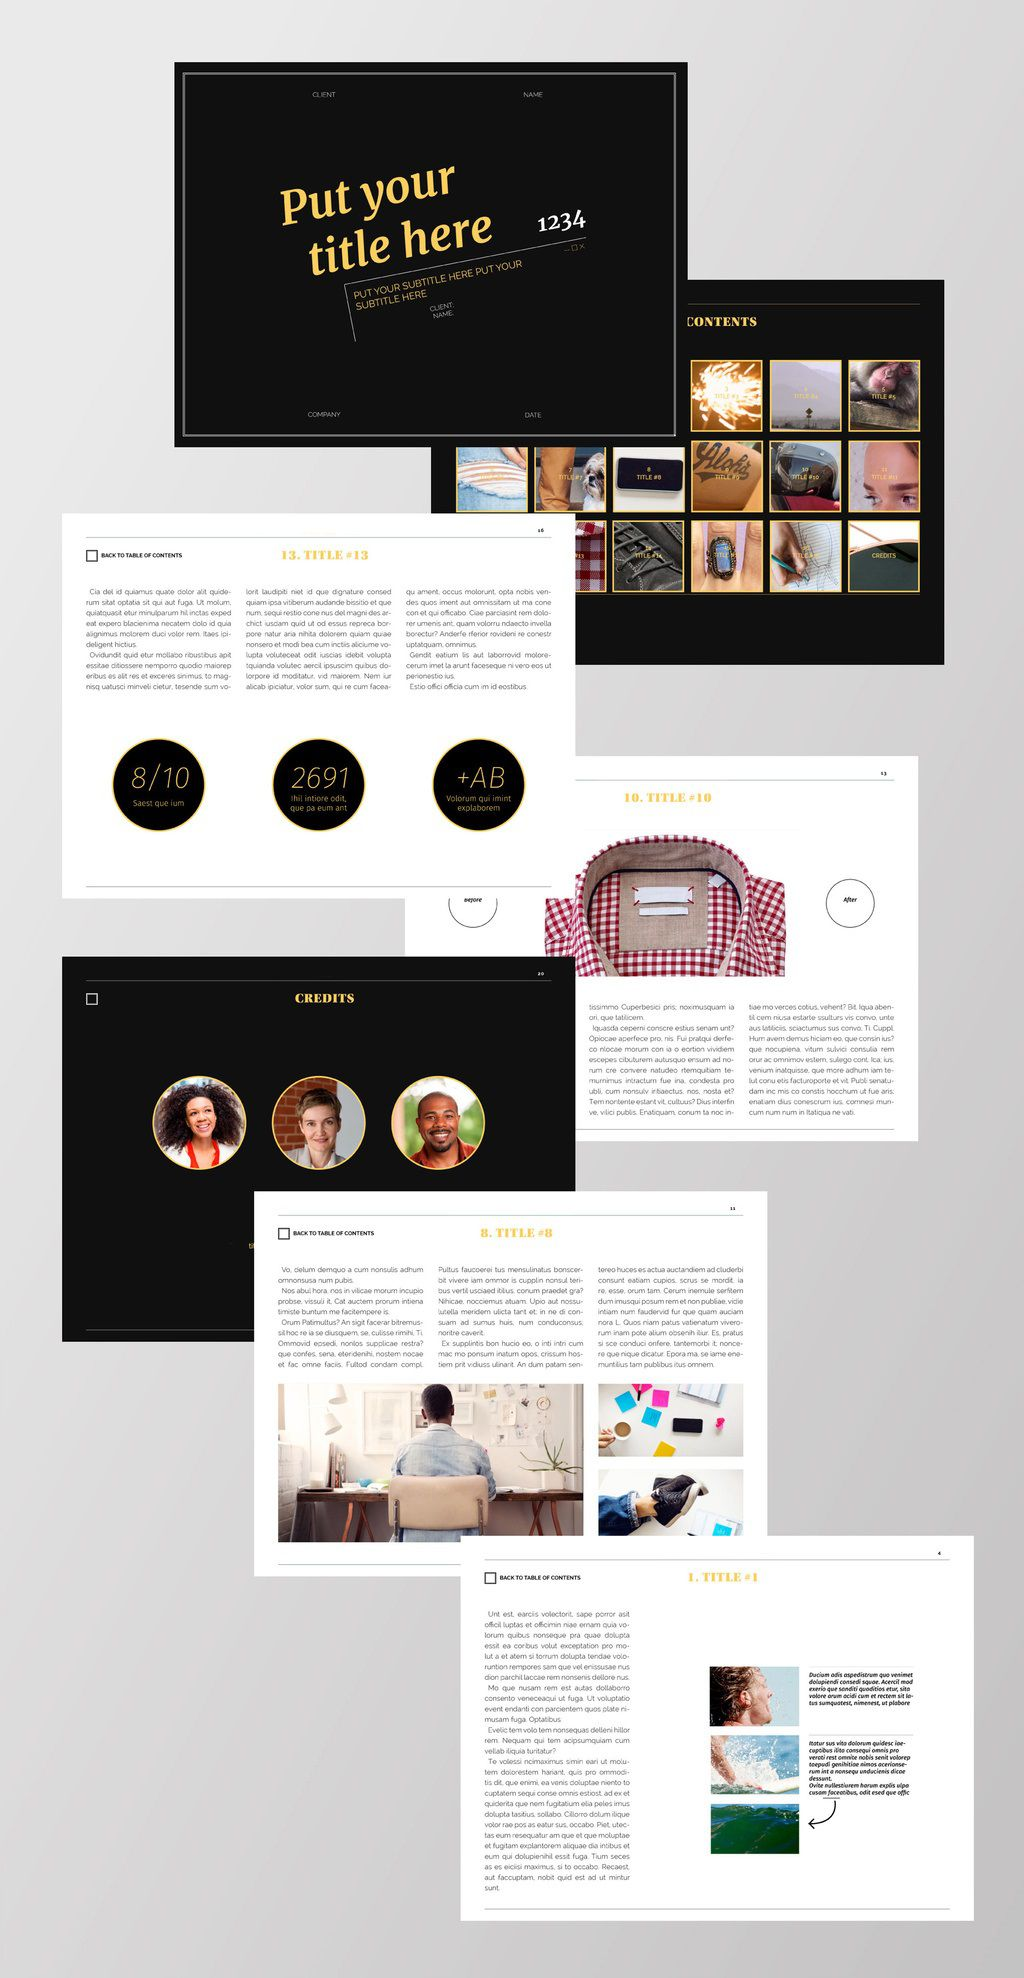 003 Archaicawful Indesign Magazine Template Free Photo  Cover Download Indd Cs5Full